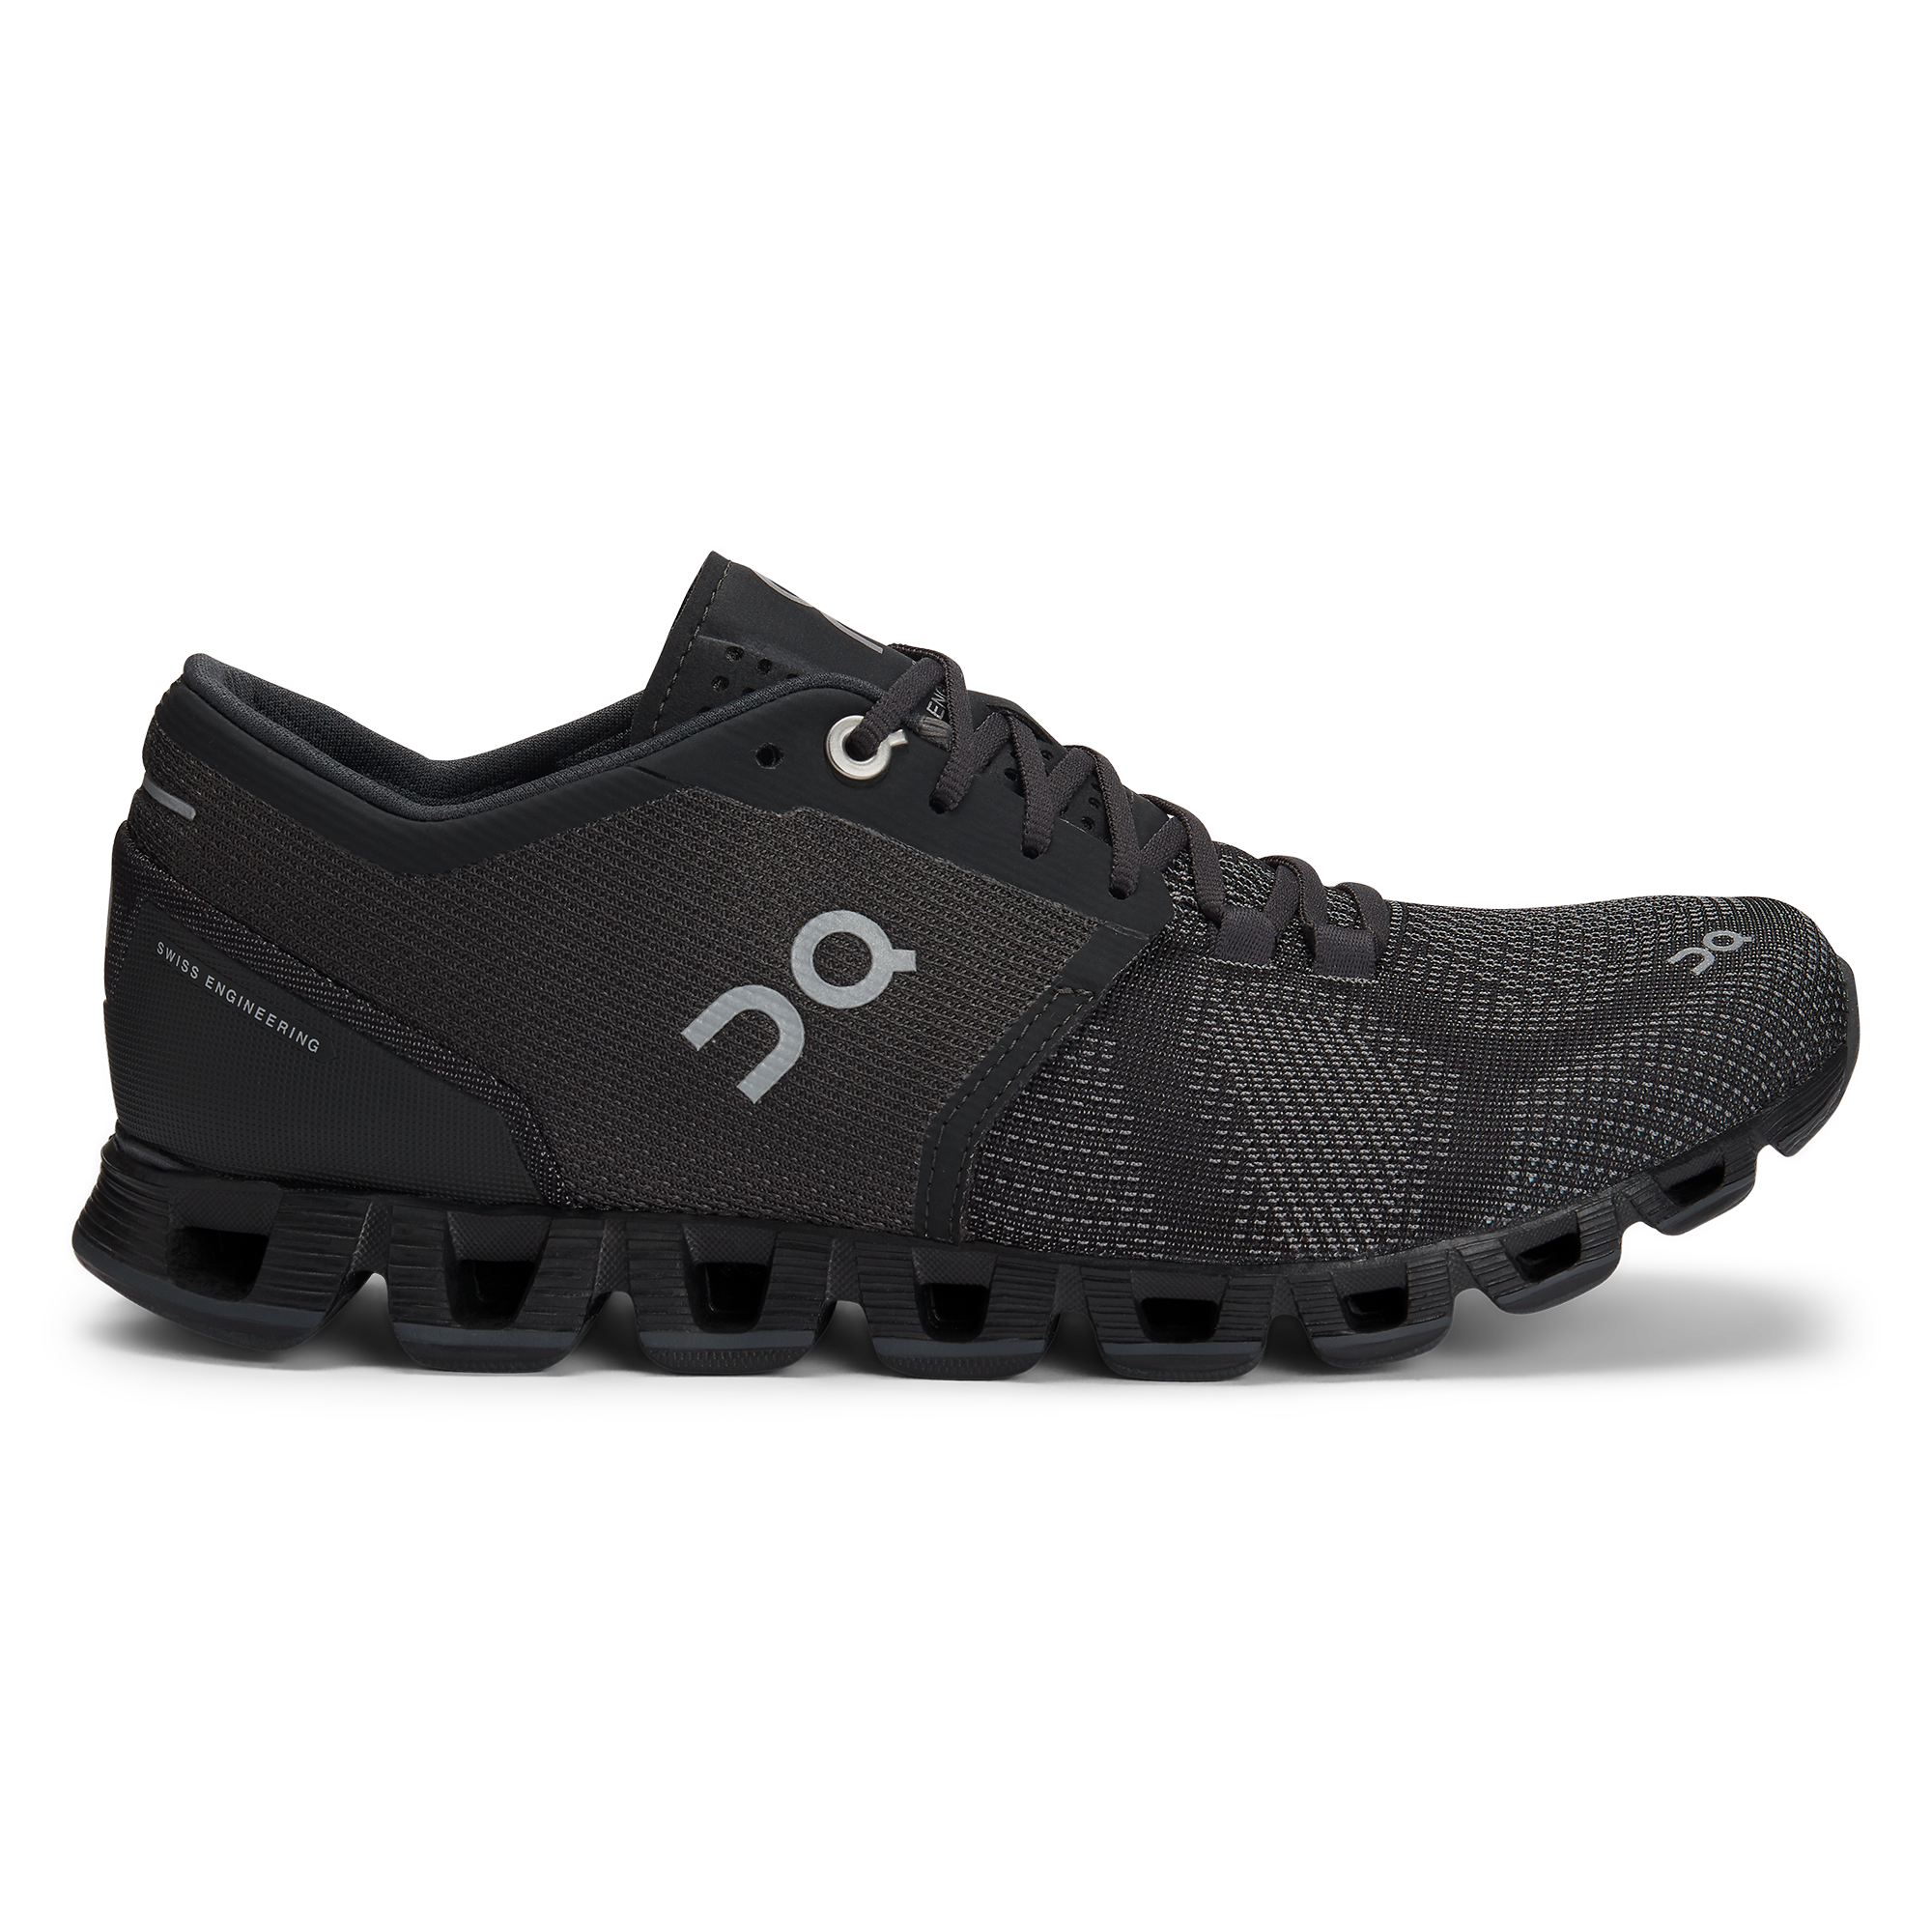 4f3a0740ff5 Cloud X - Workout & Training Shoe | On